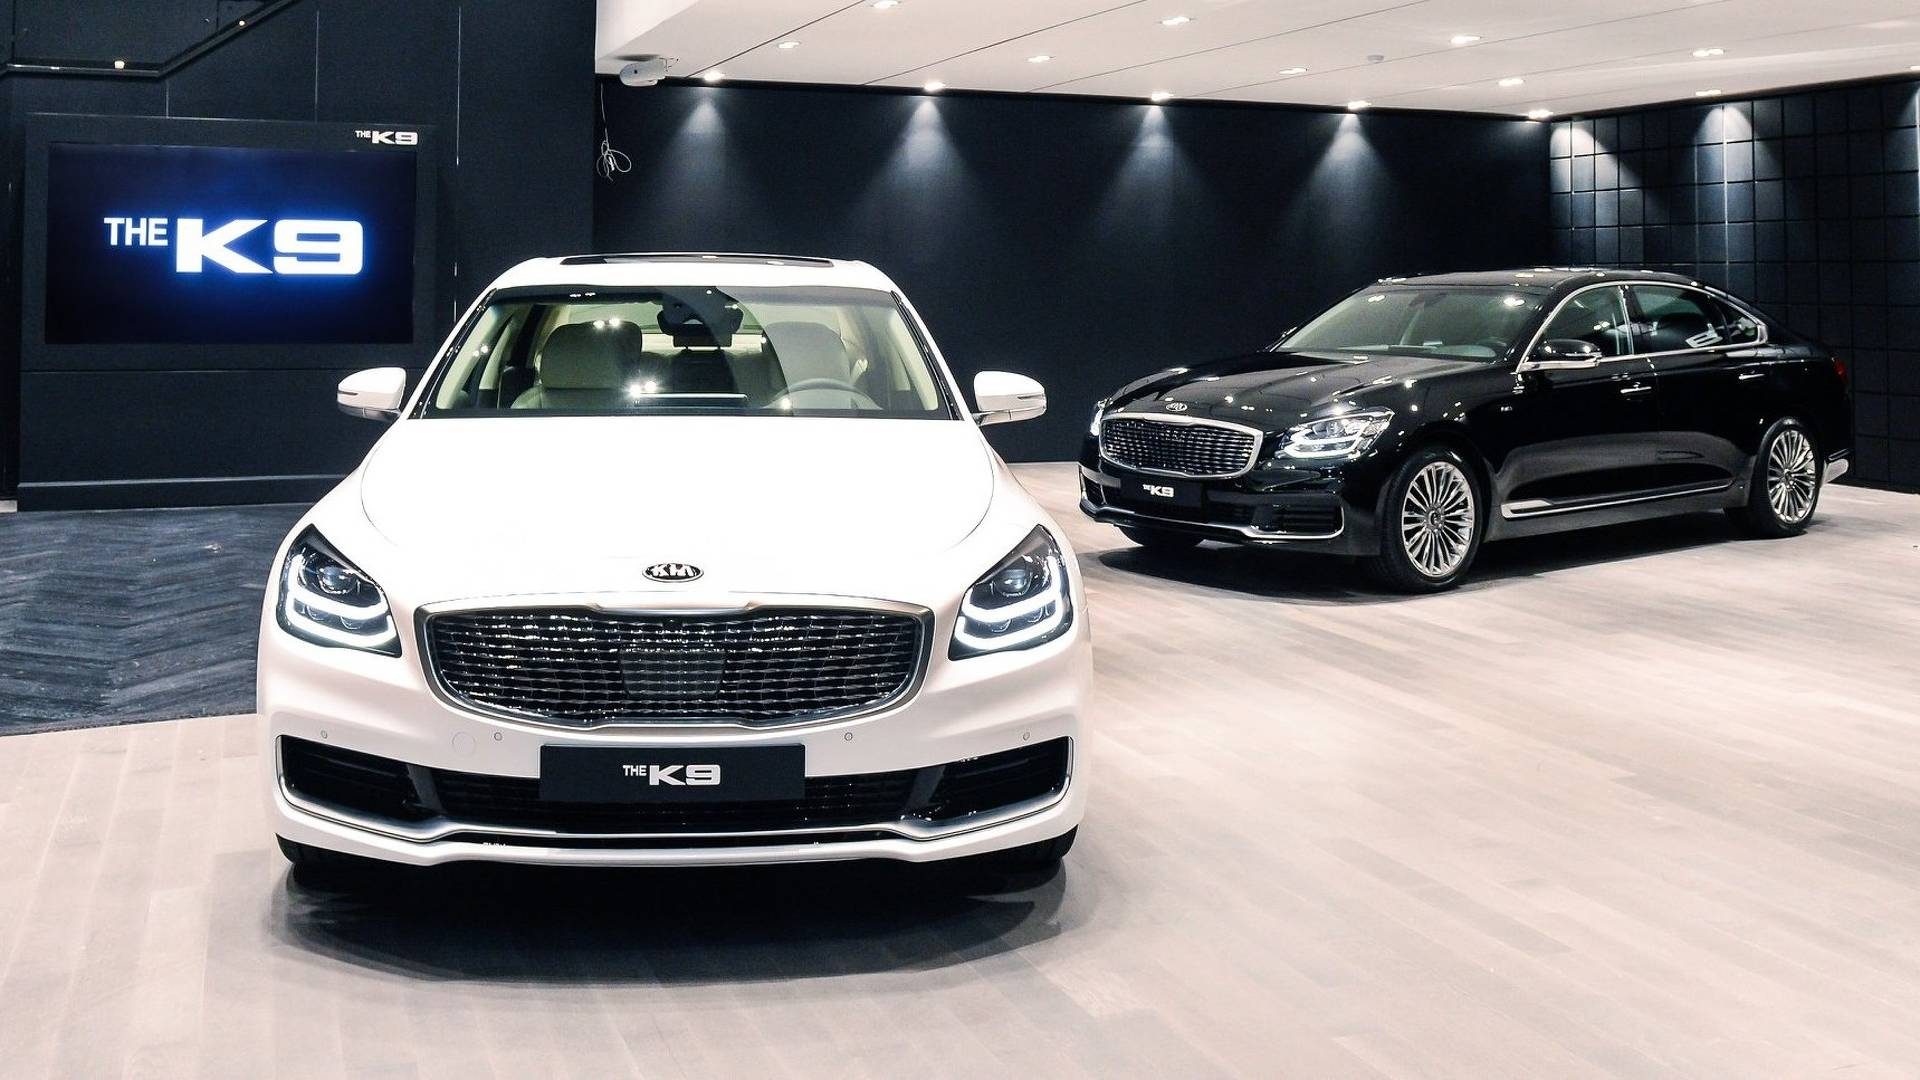 2018 Kia K900 Getting More Standard Kit, Price Hike Of Up To